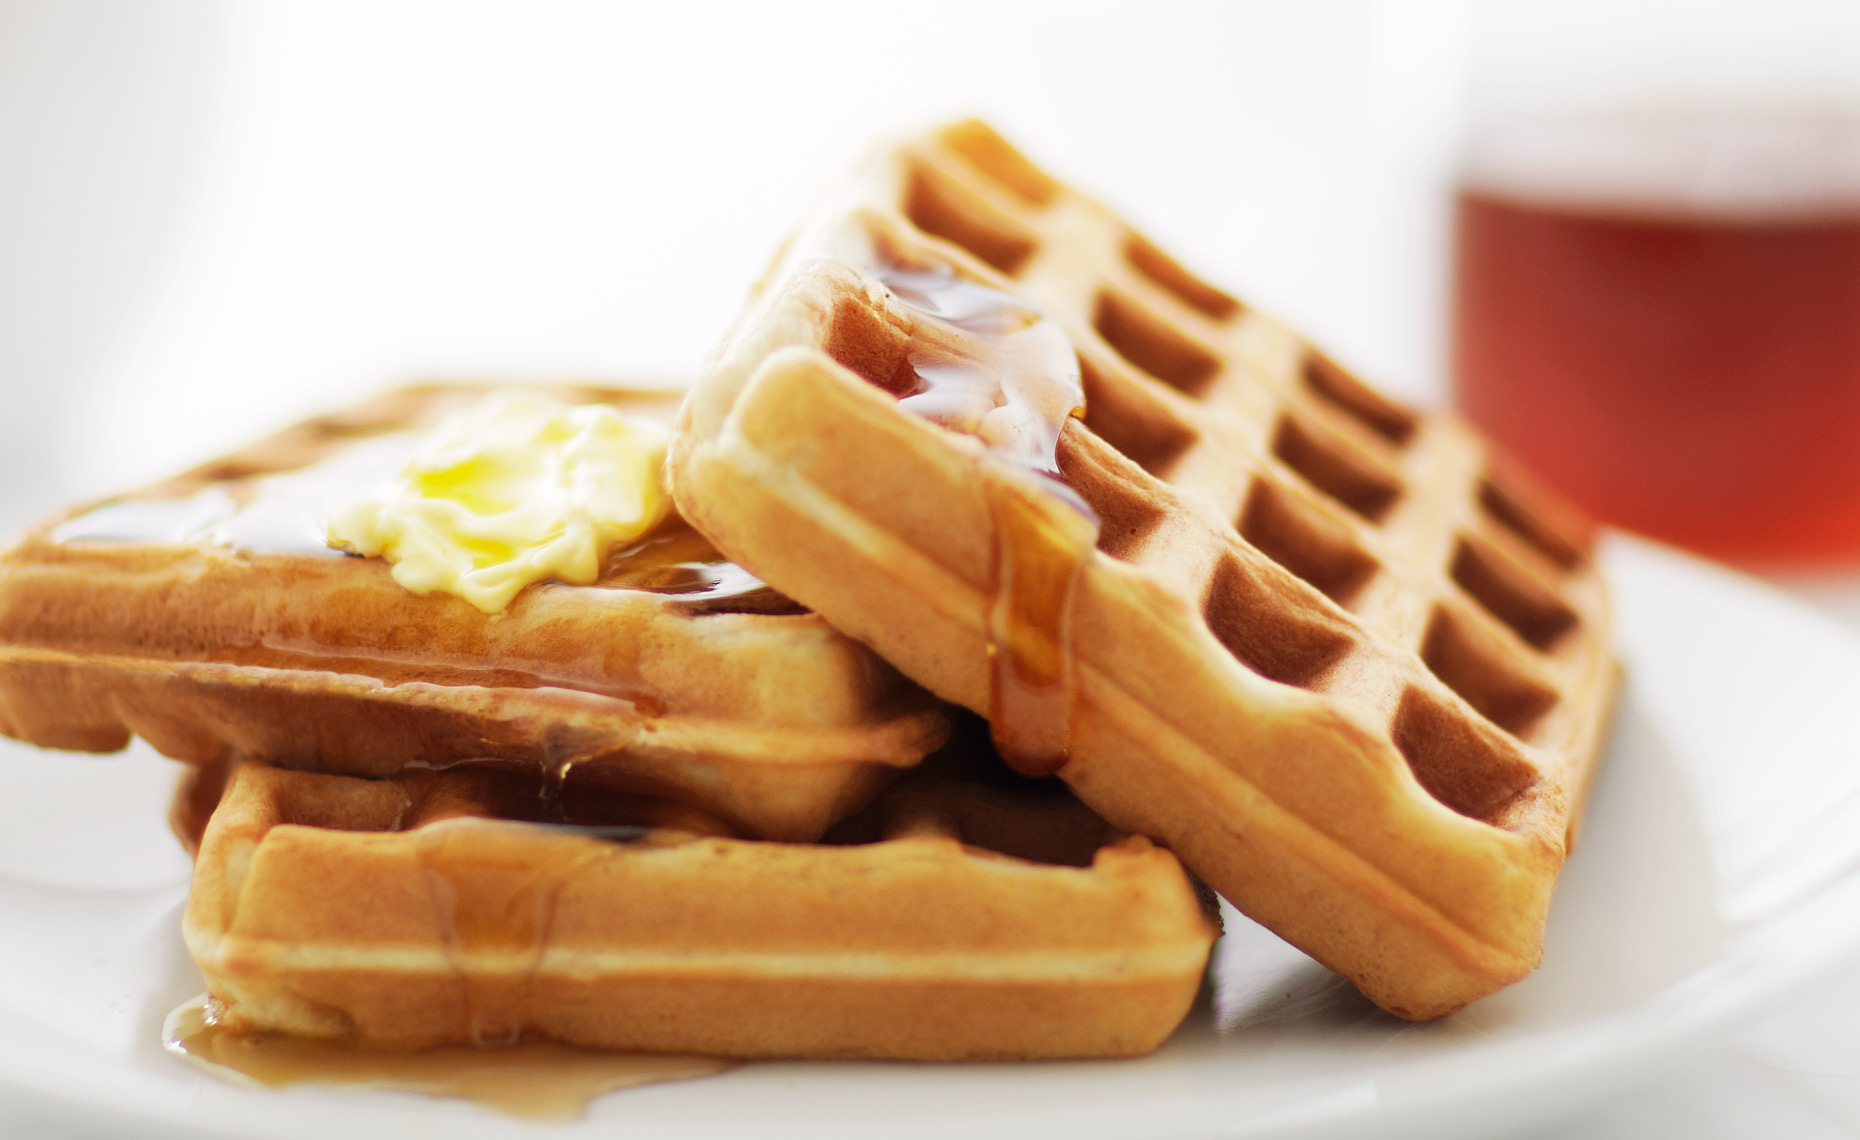 Andy-Post-Food-Photography-Waffle-with-Syrup